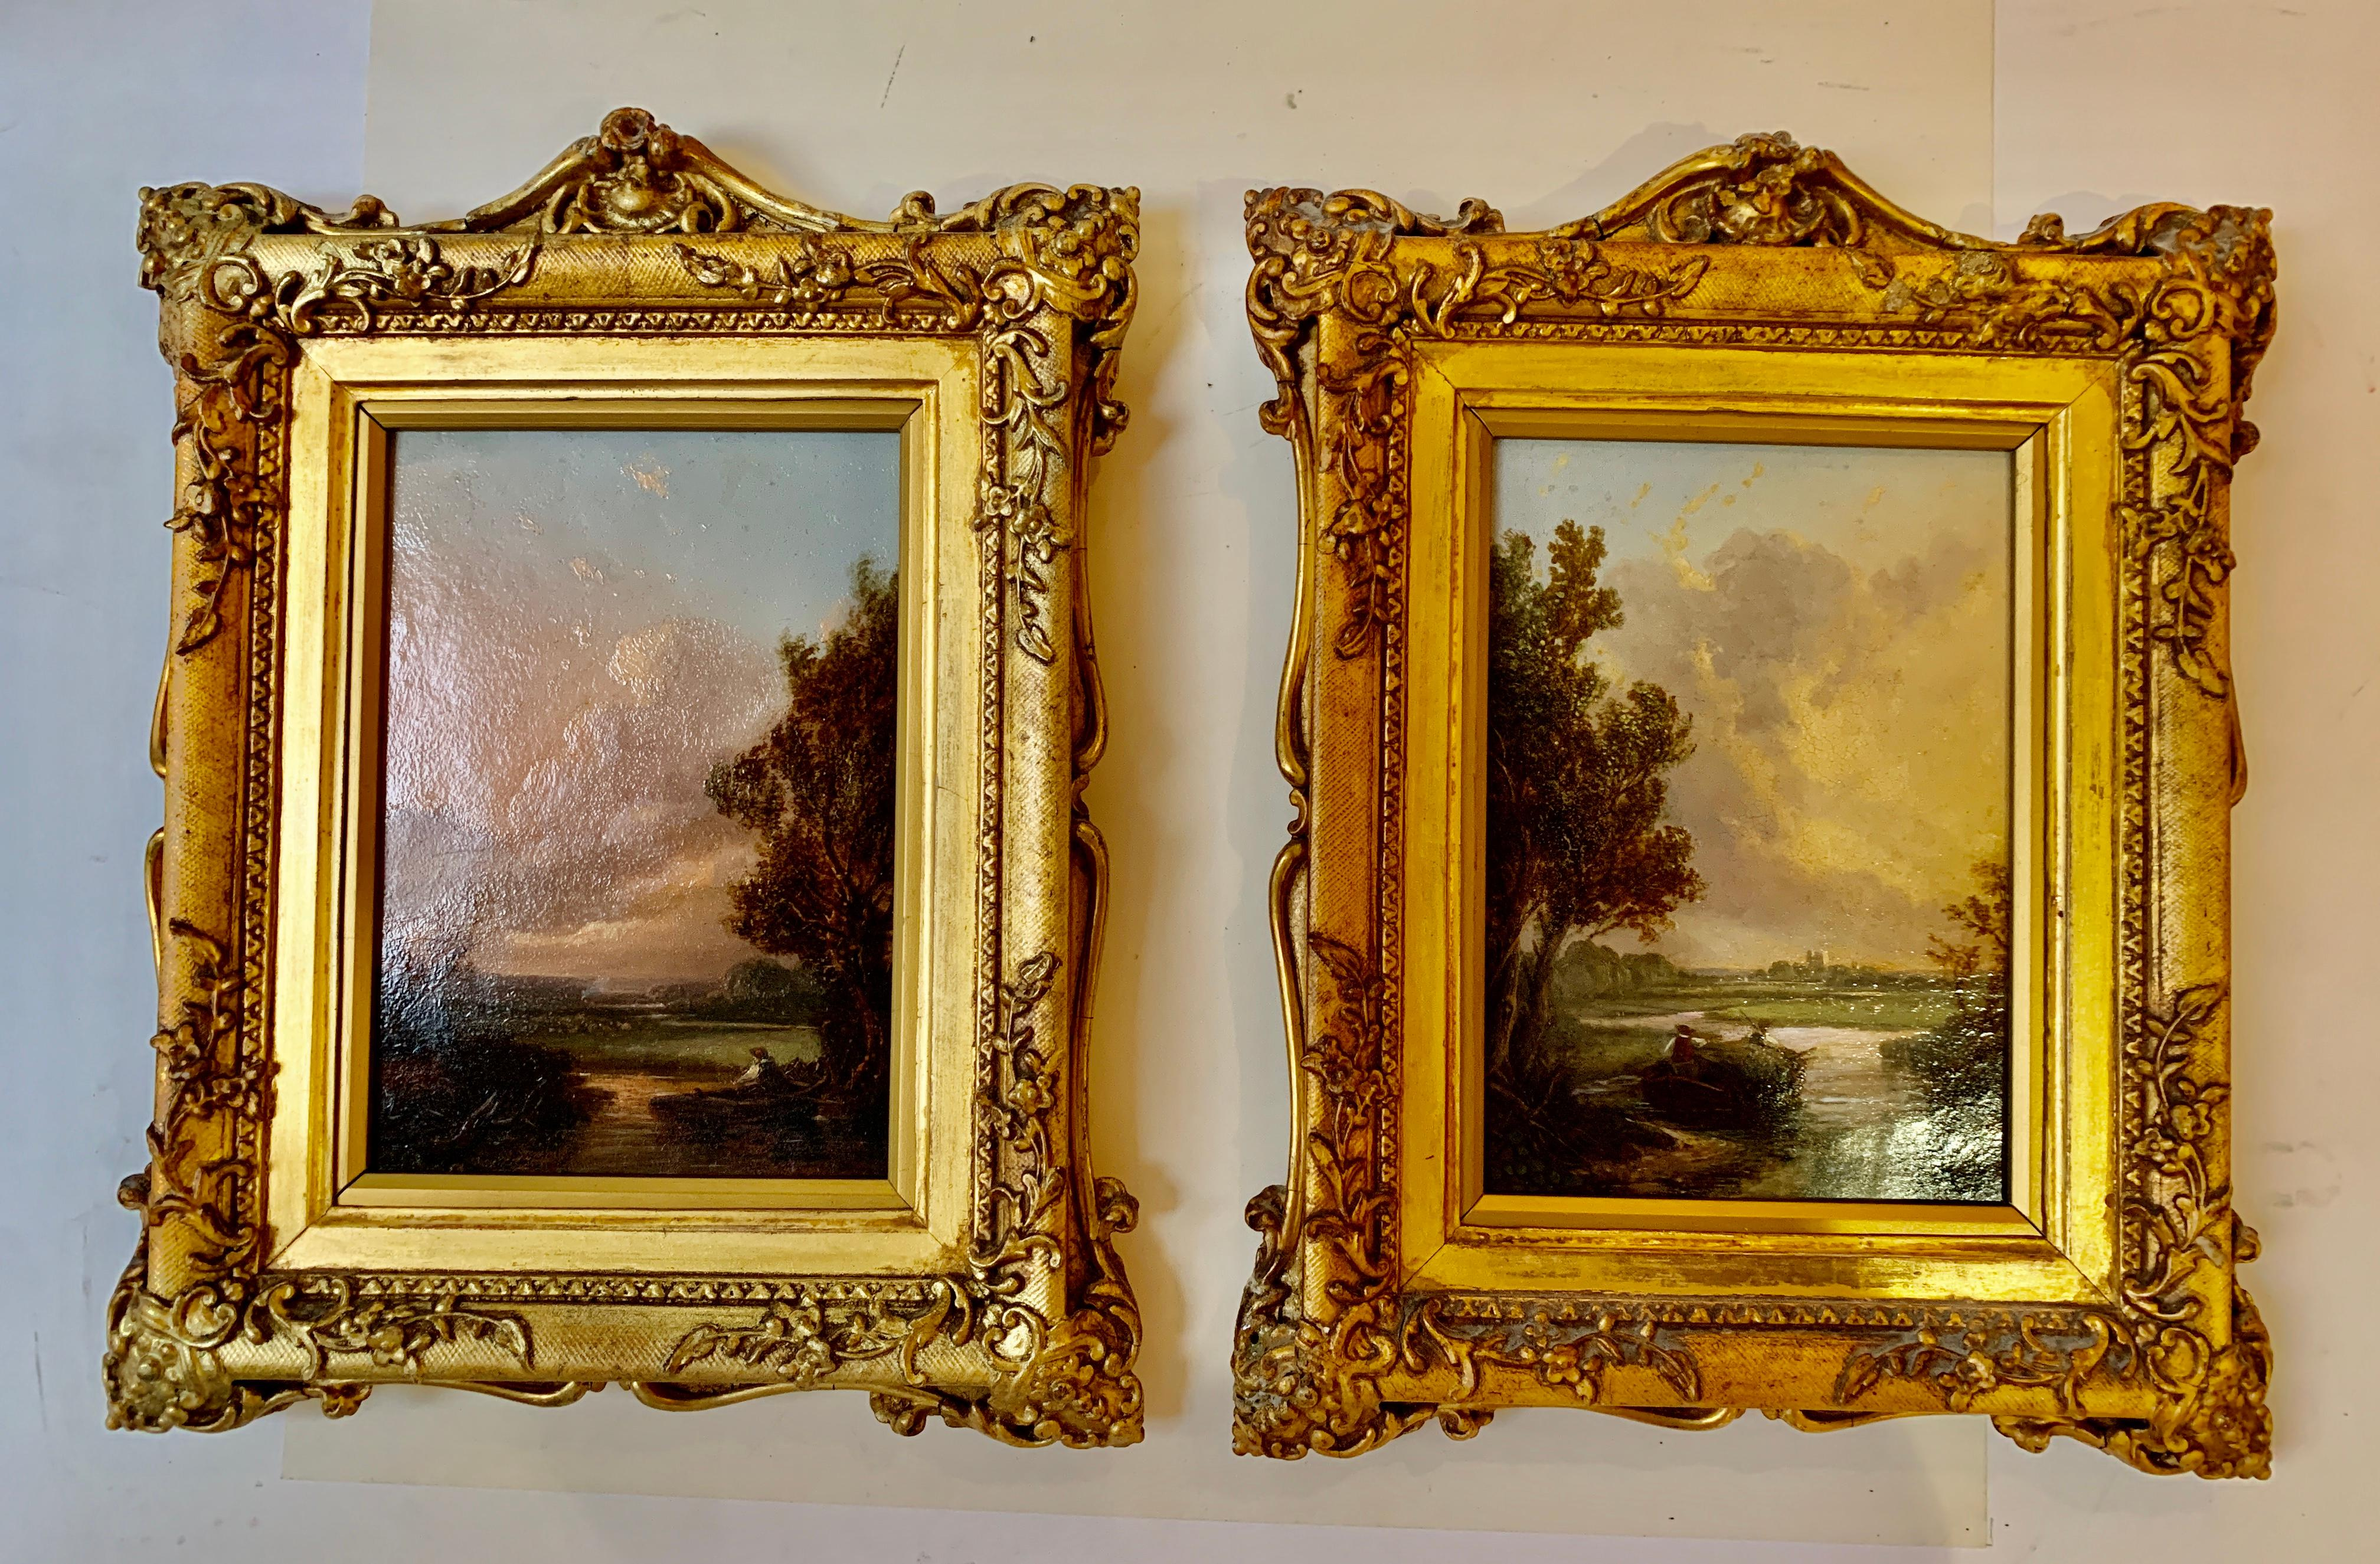 Pair of English 19th century landscapes with men fishing